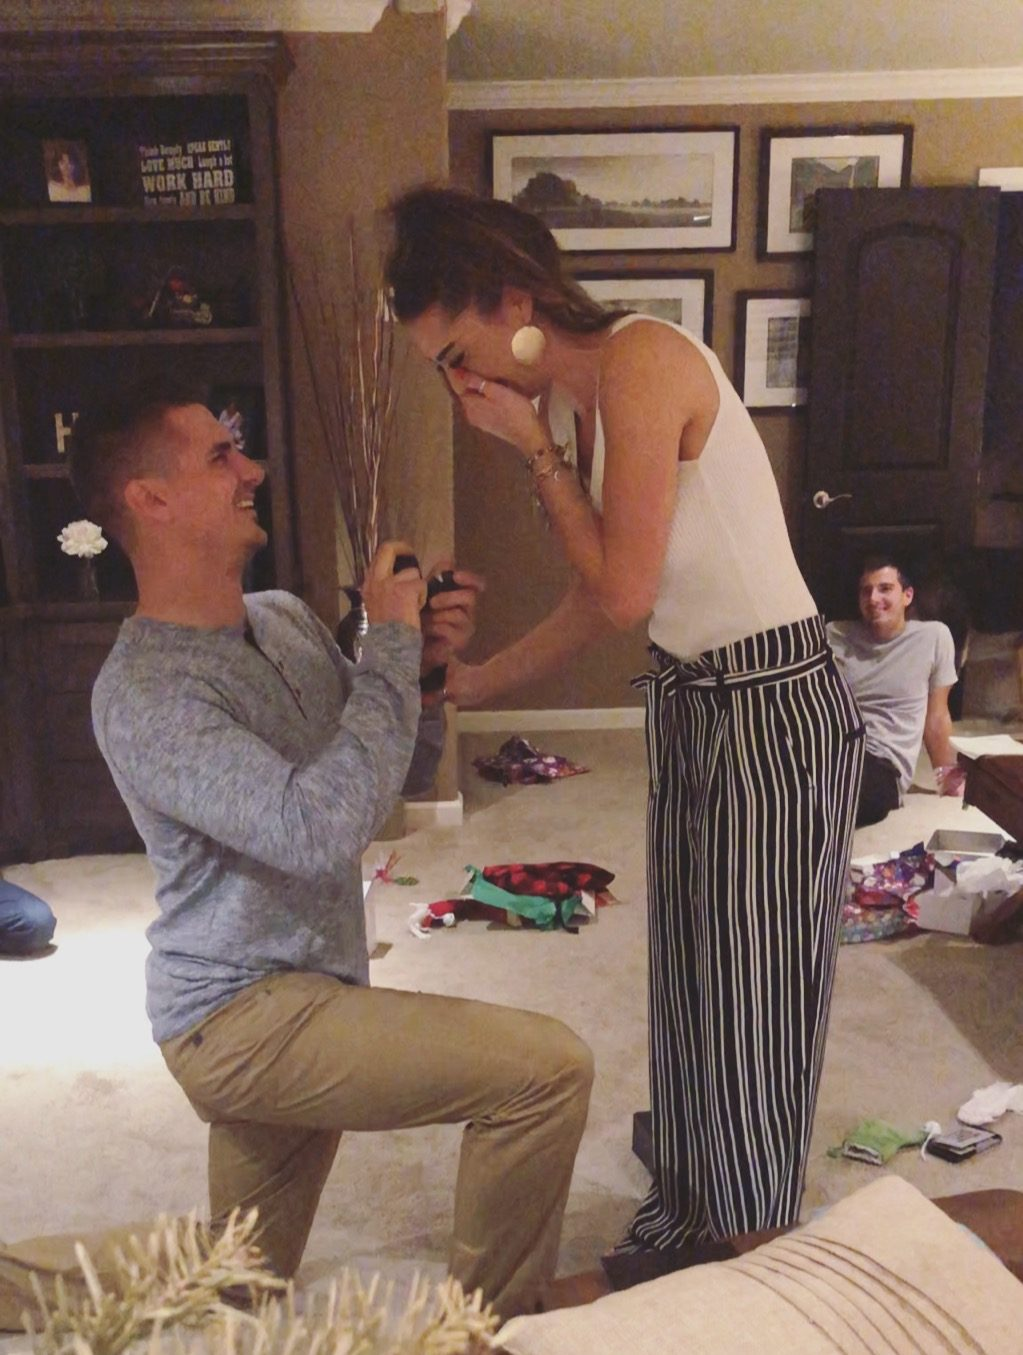 Morgan and Kyle's Engagement in My moms house